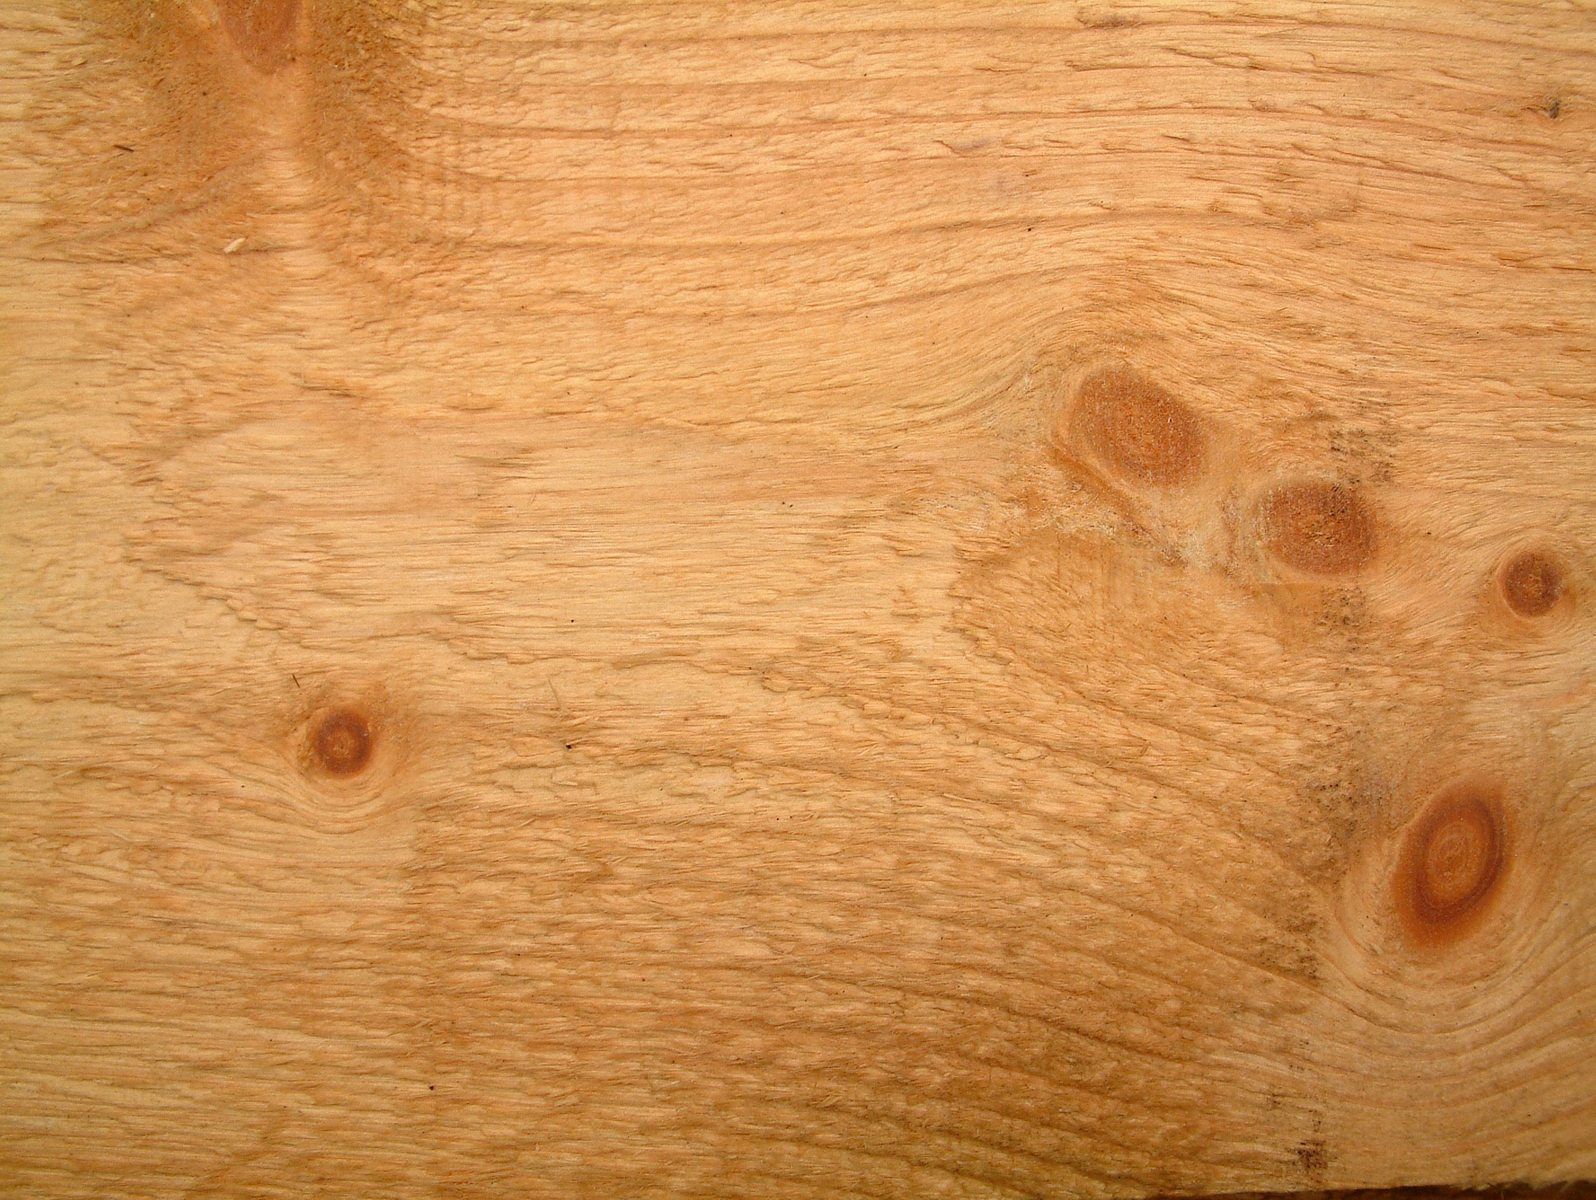 textured-old-wood-3-1504250